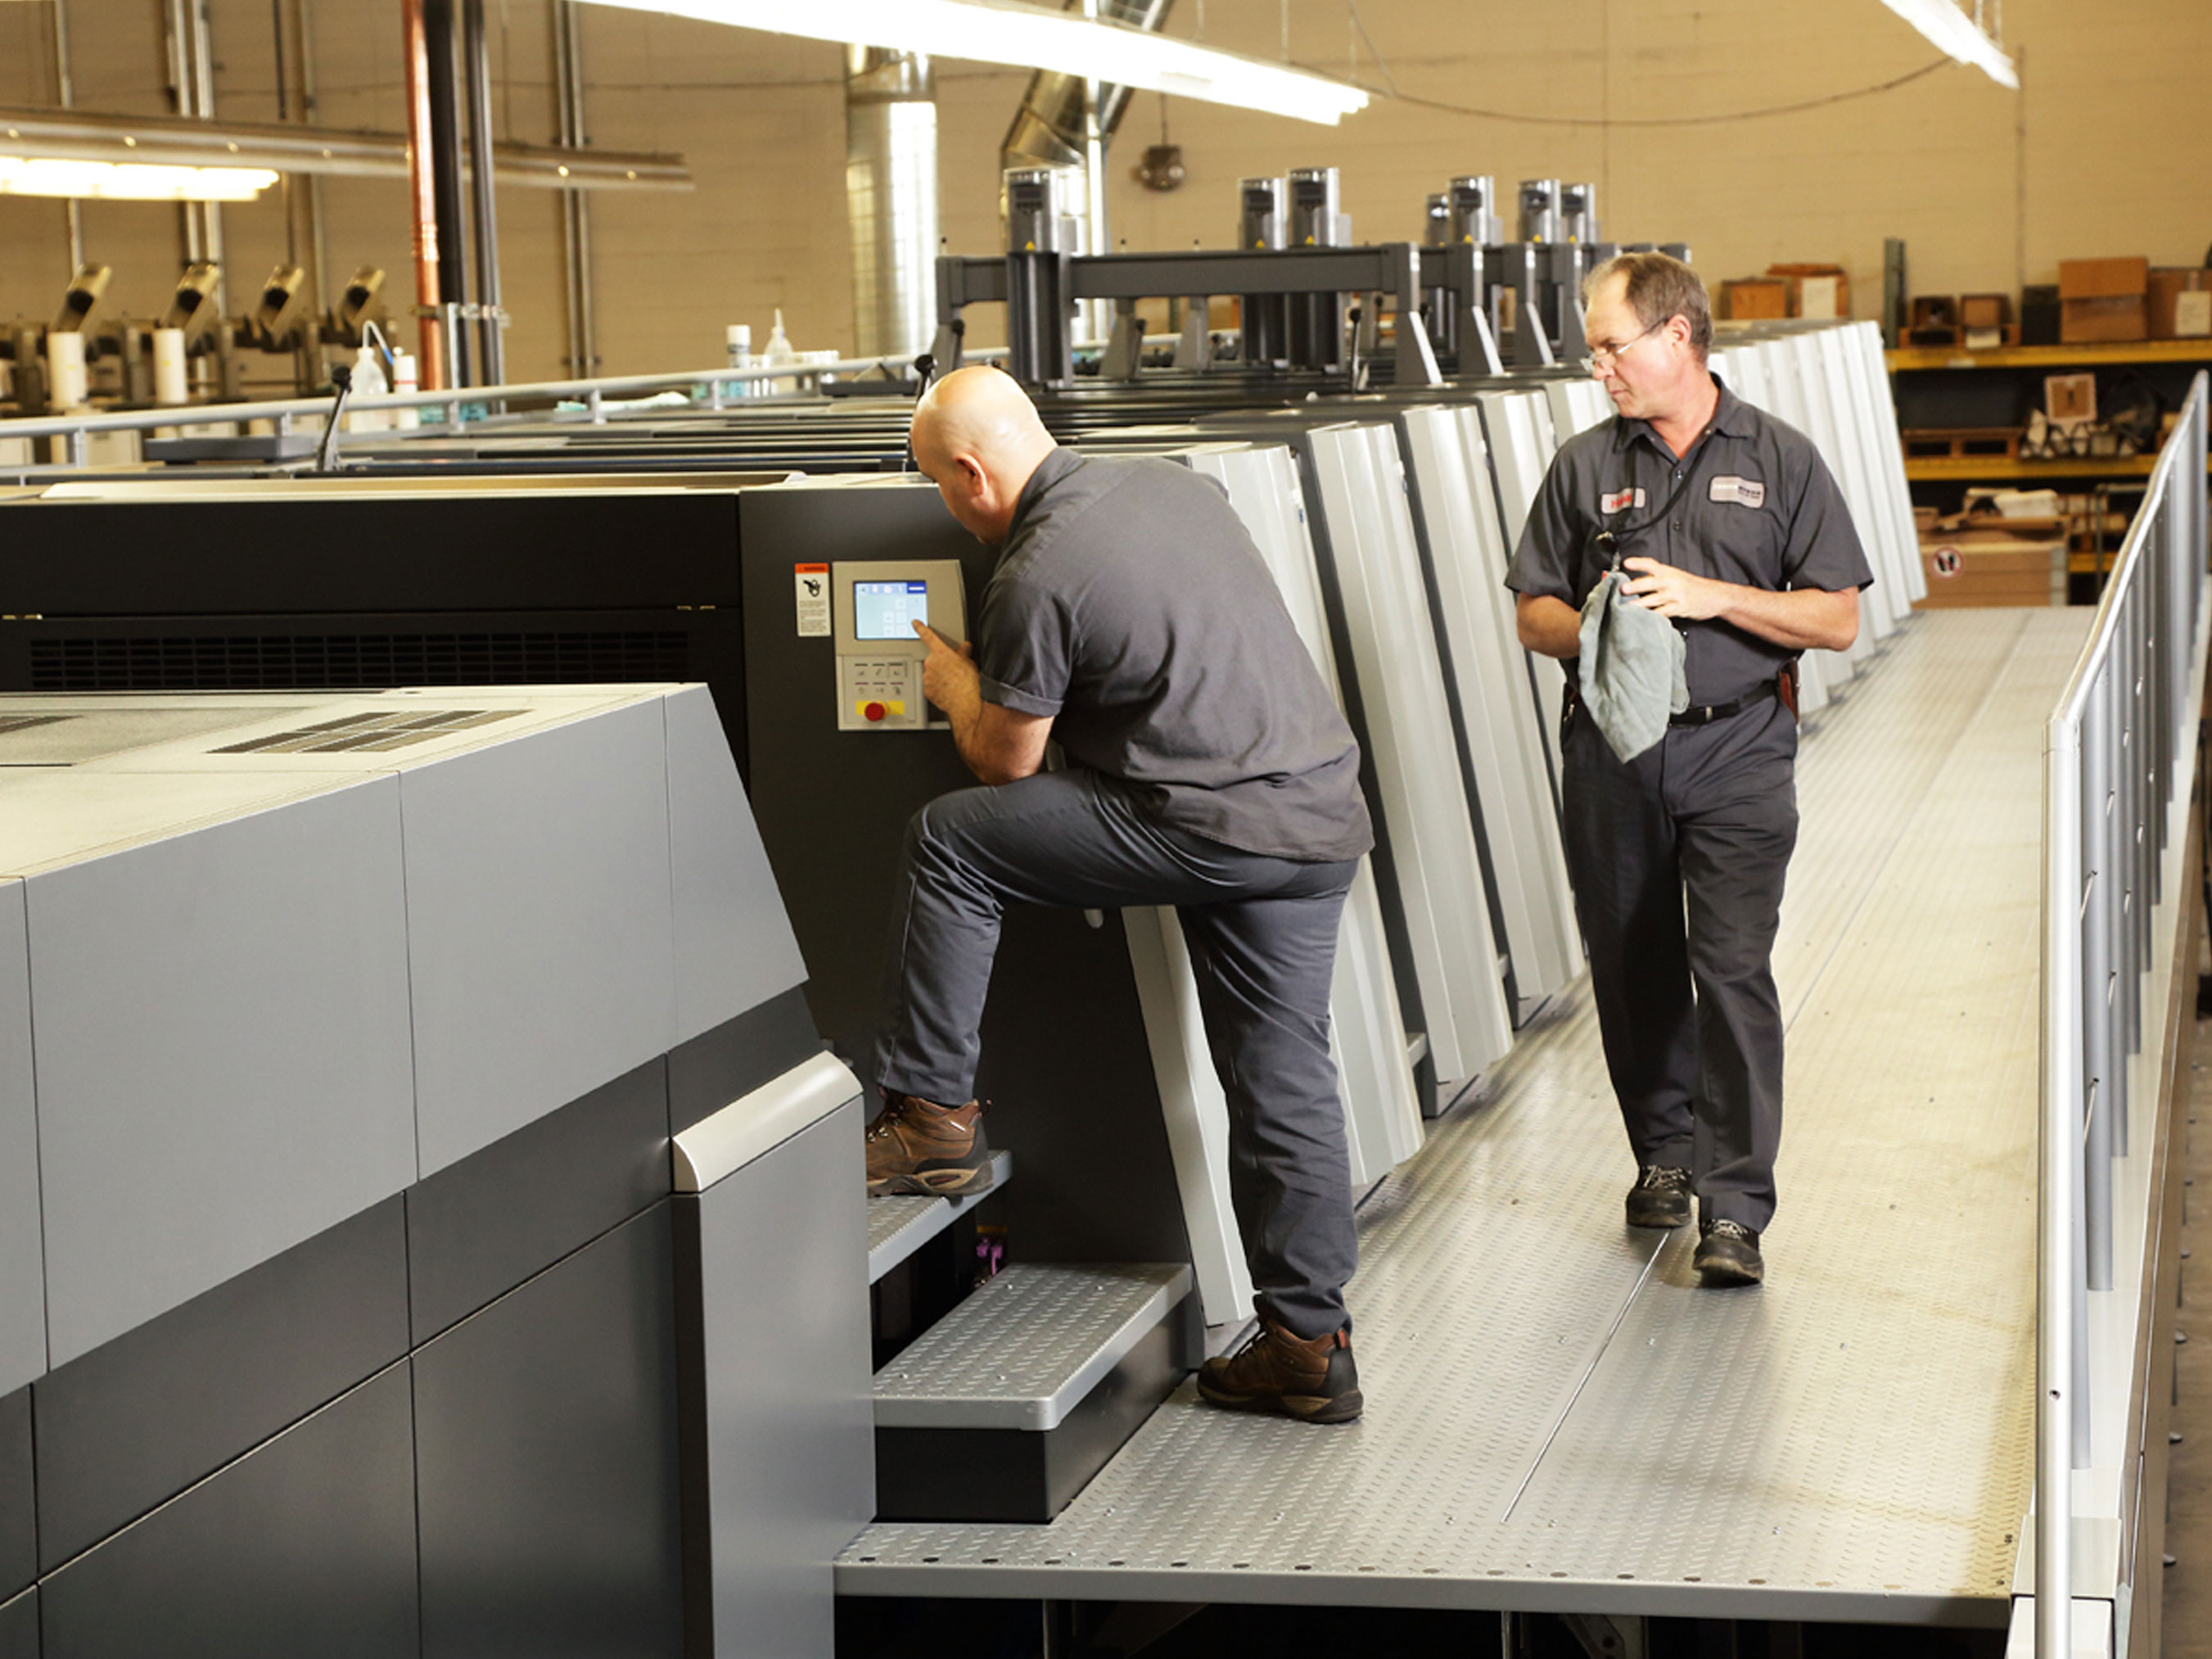 There are various commercial presses including digital presses, offset presses, letterpress printers and more